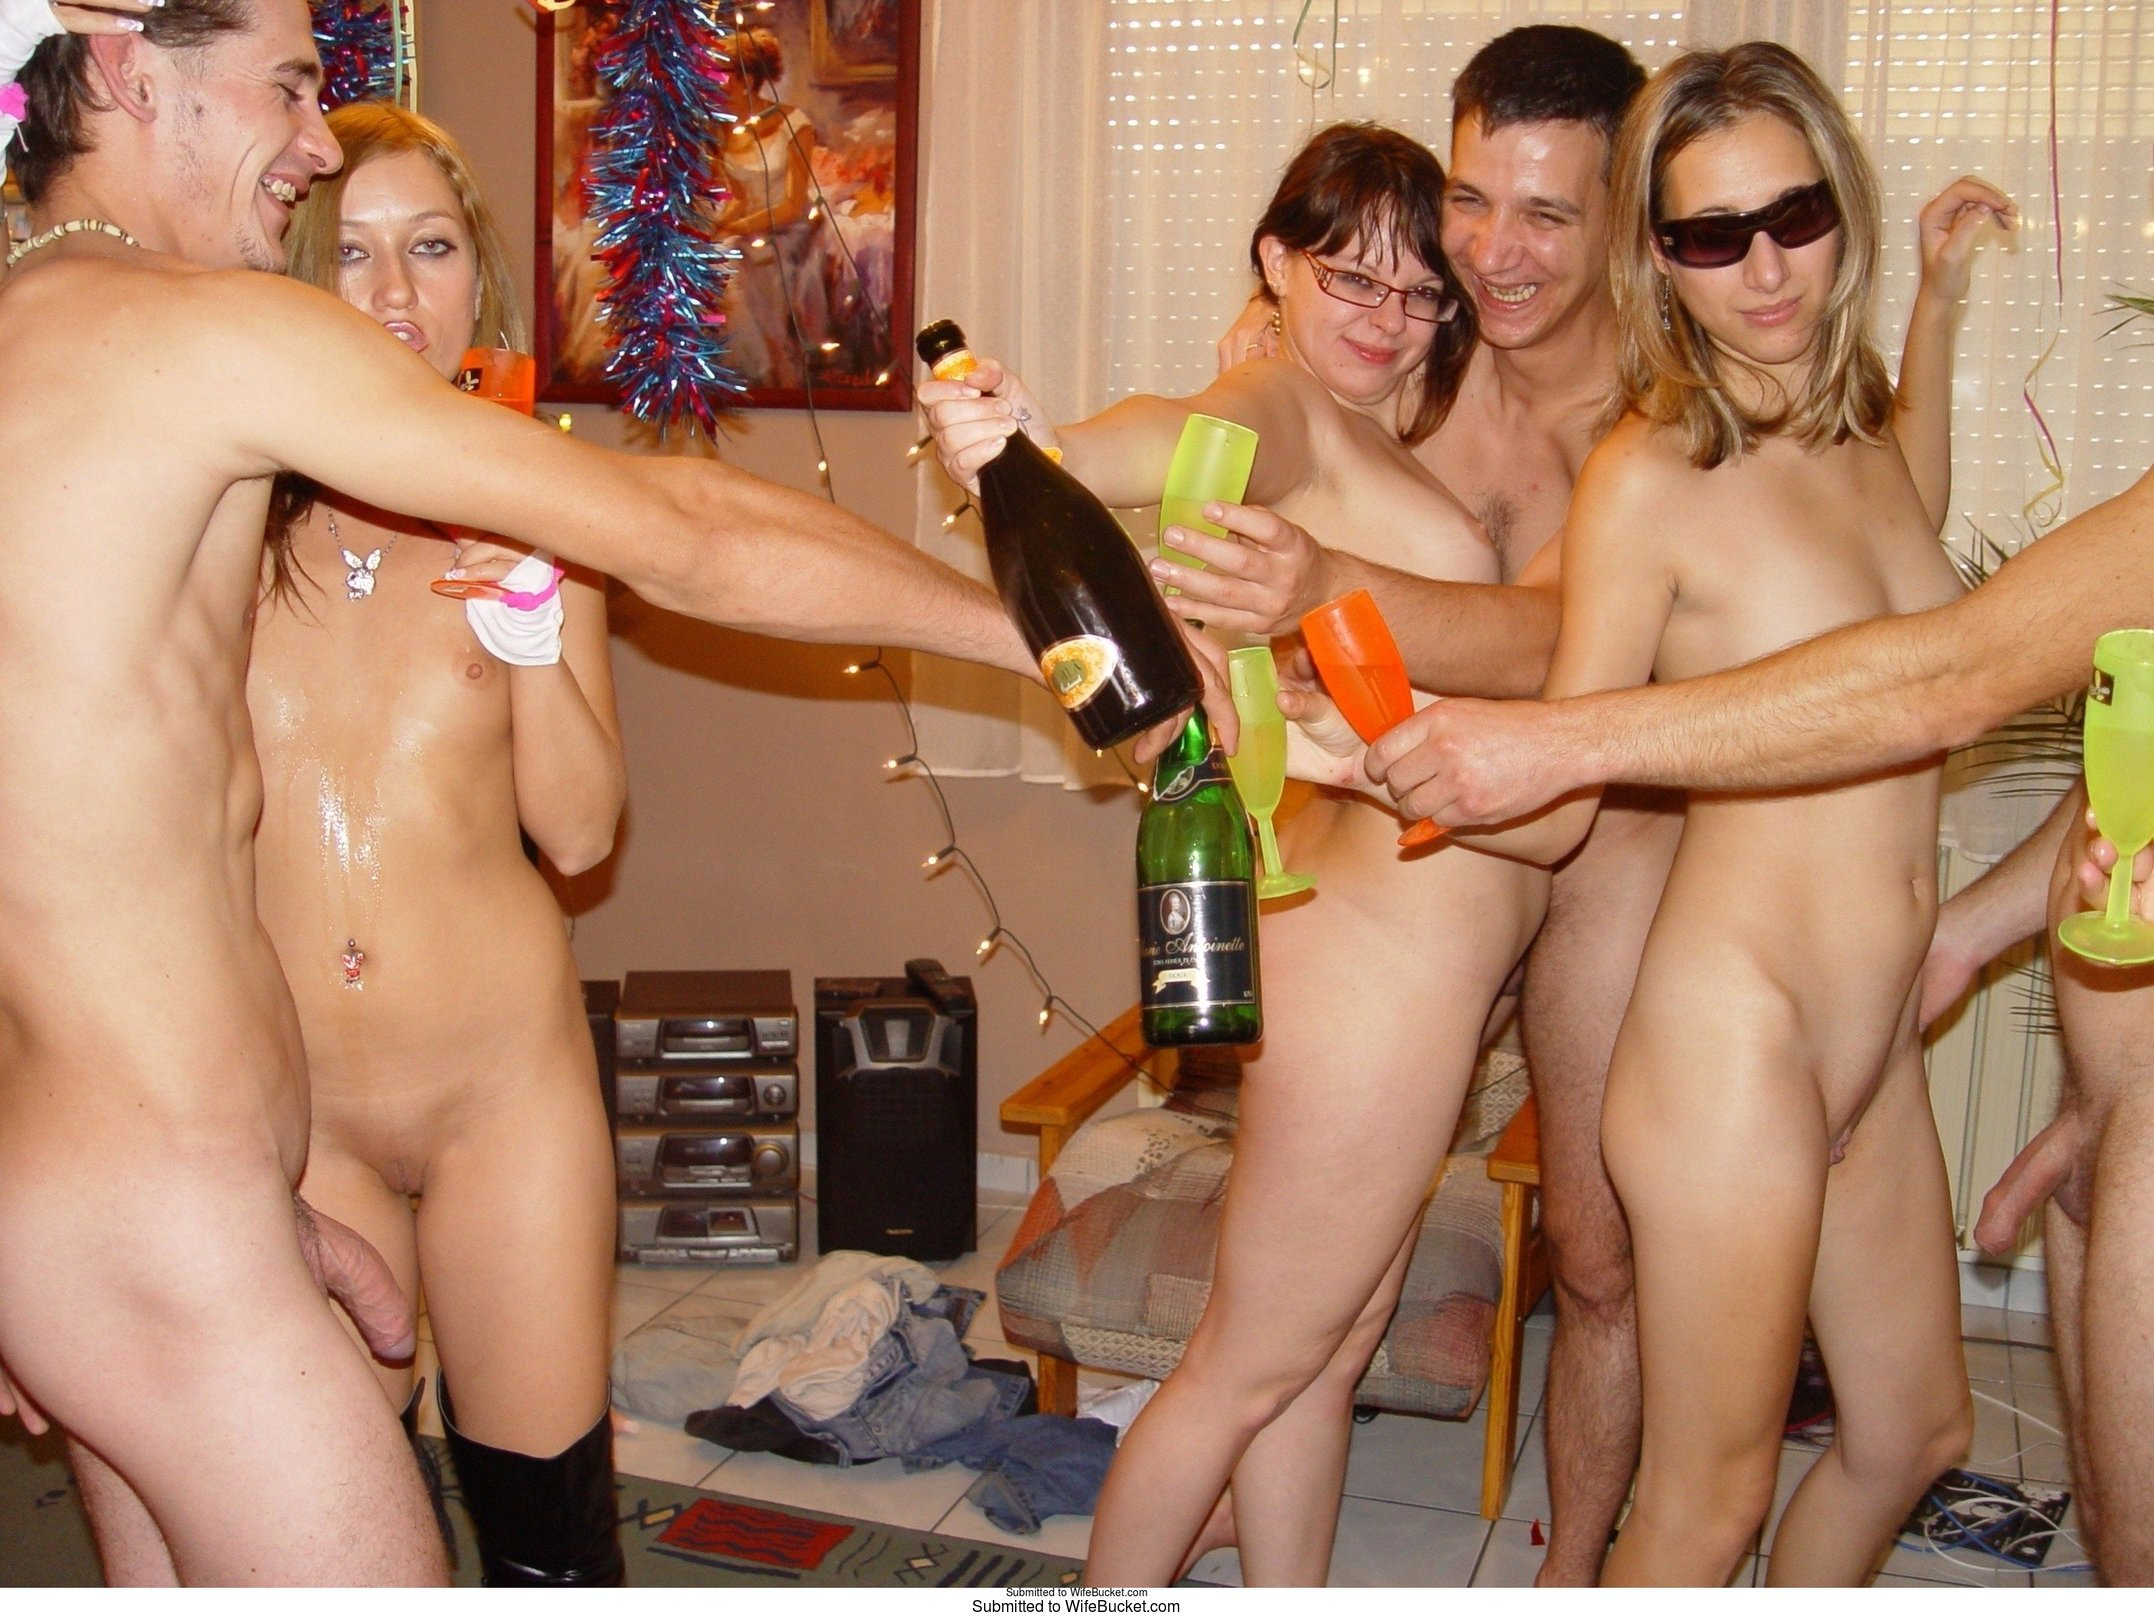 Orgy sex pictures home page